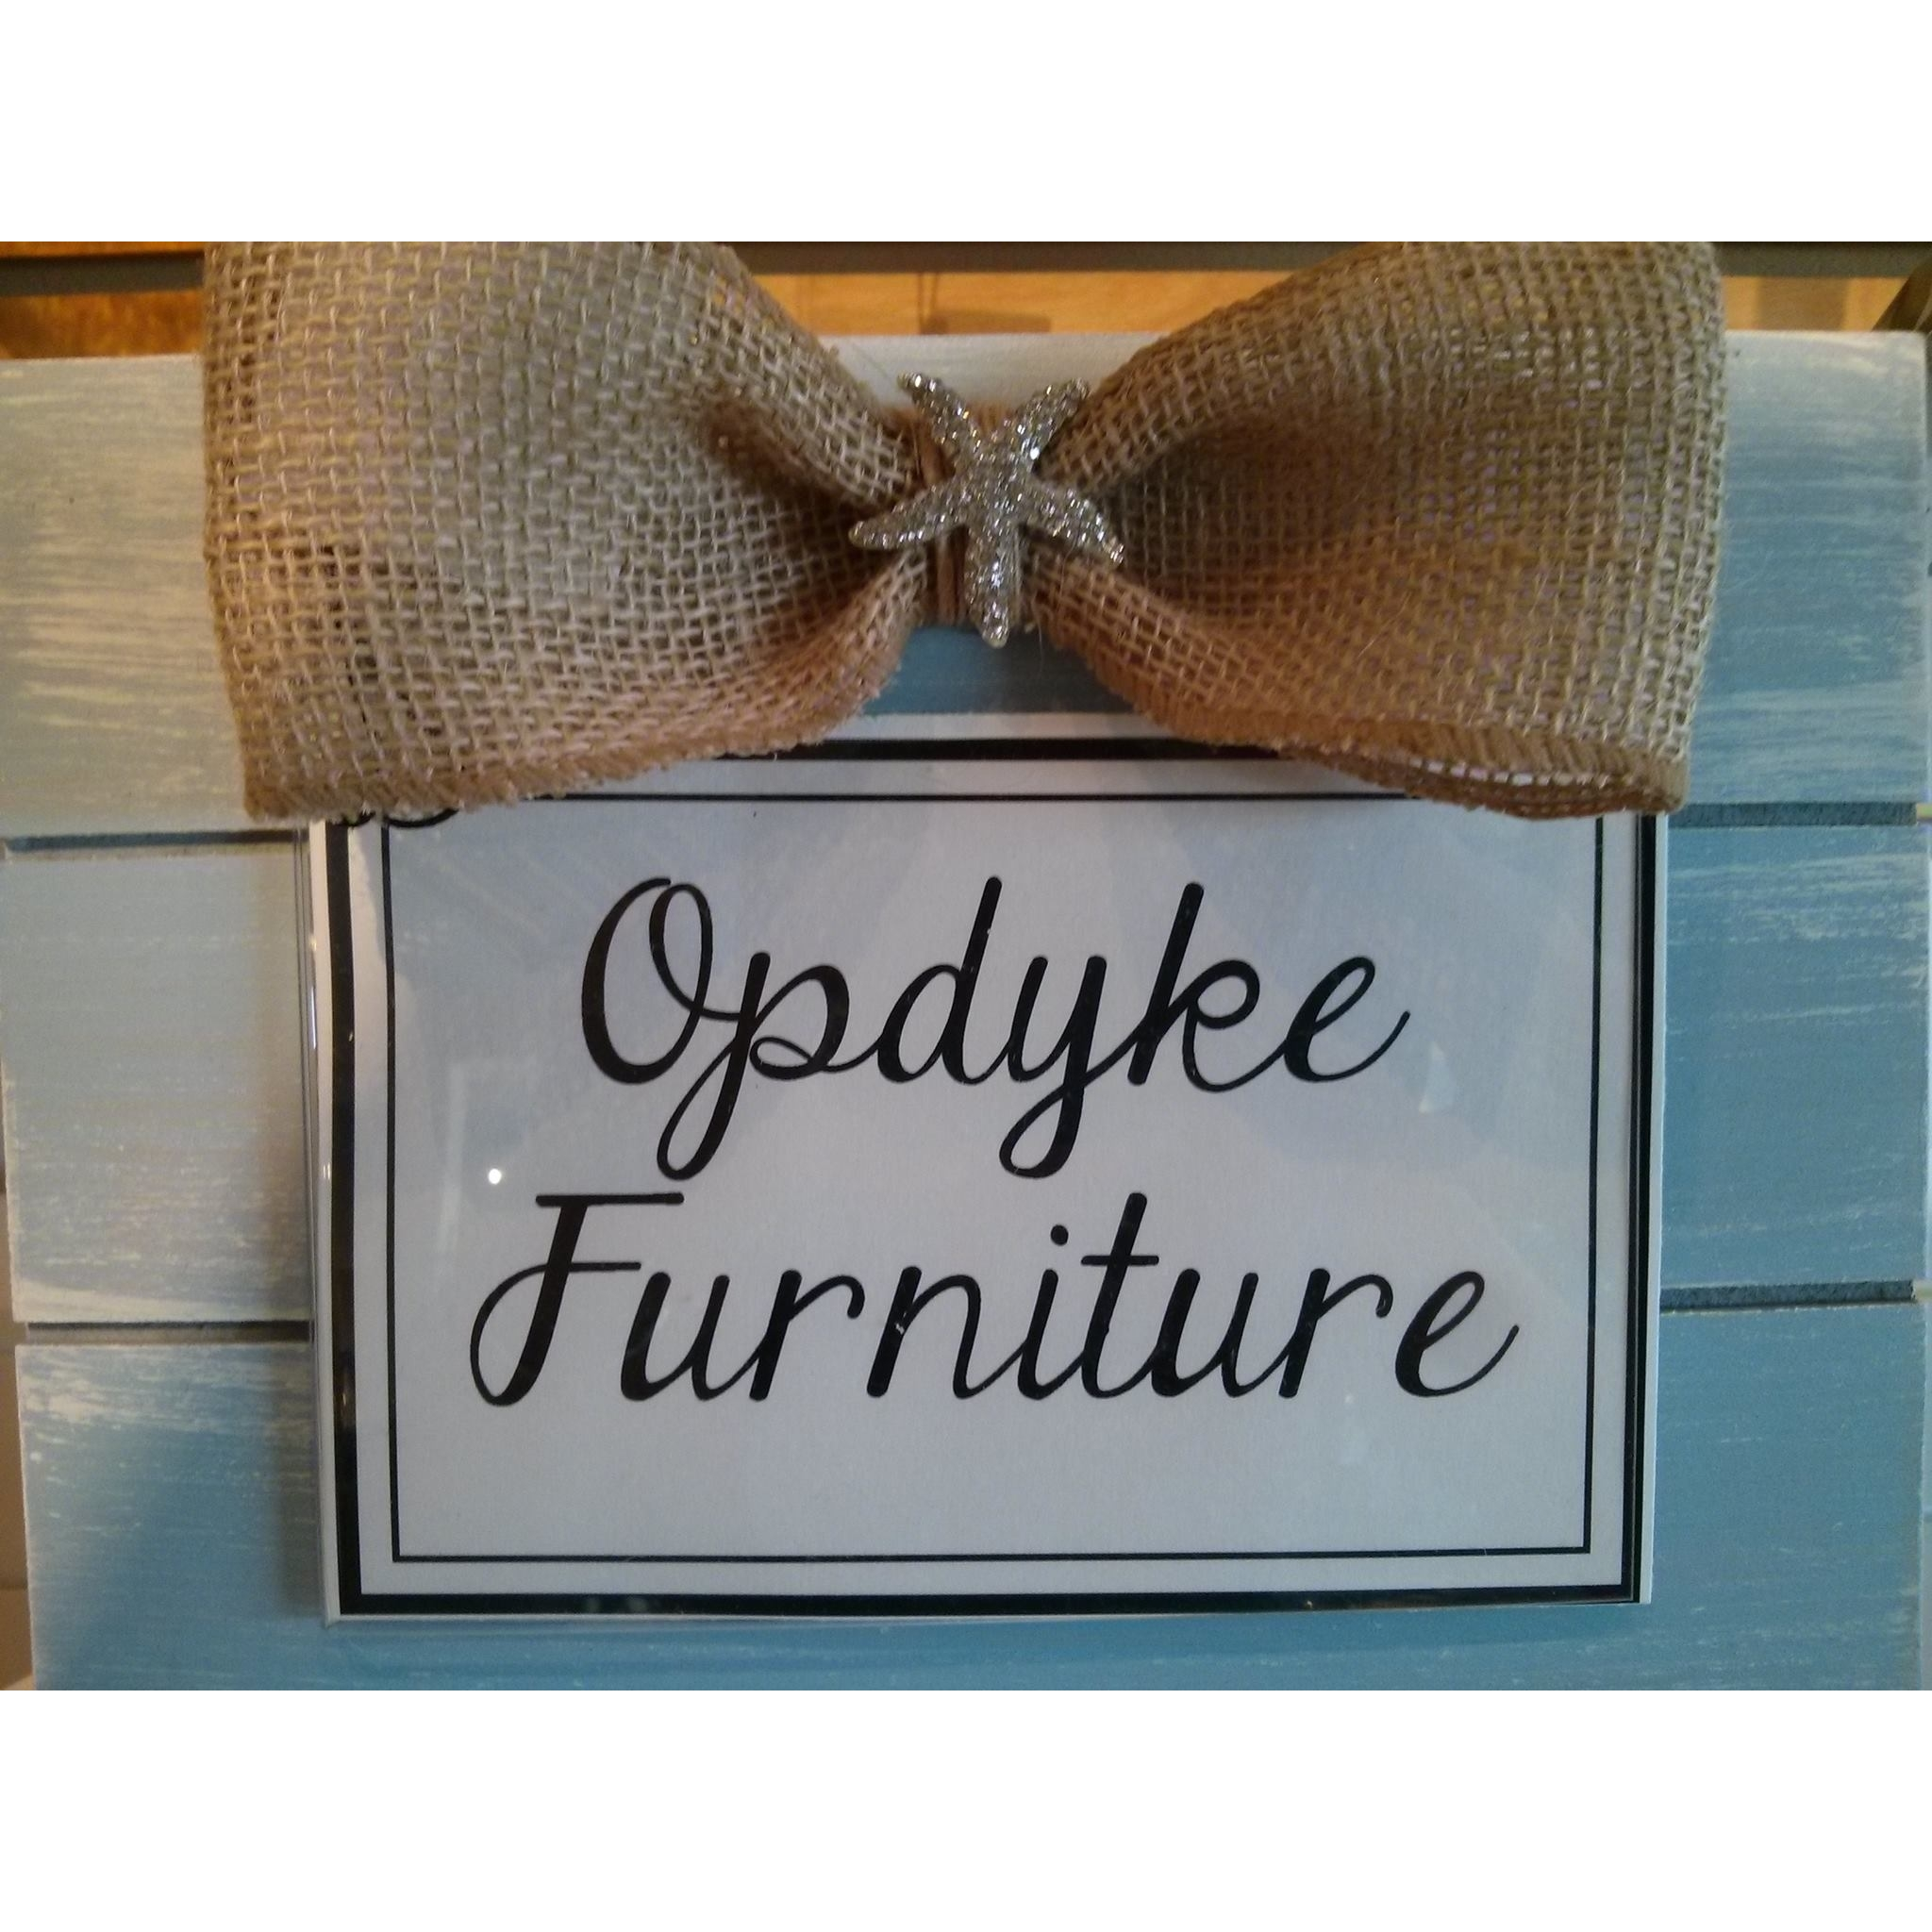 Opdyke Furniture Inc 308 Sea Avenue Highway 35 Point